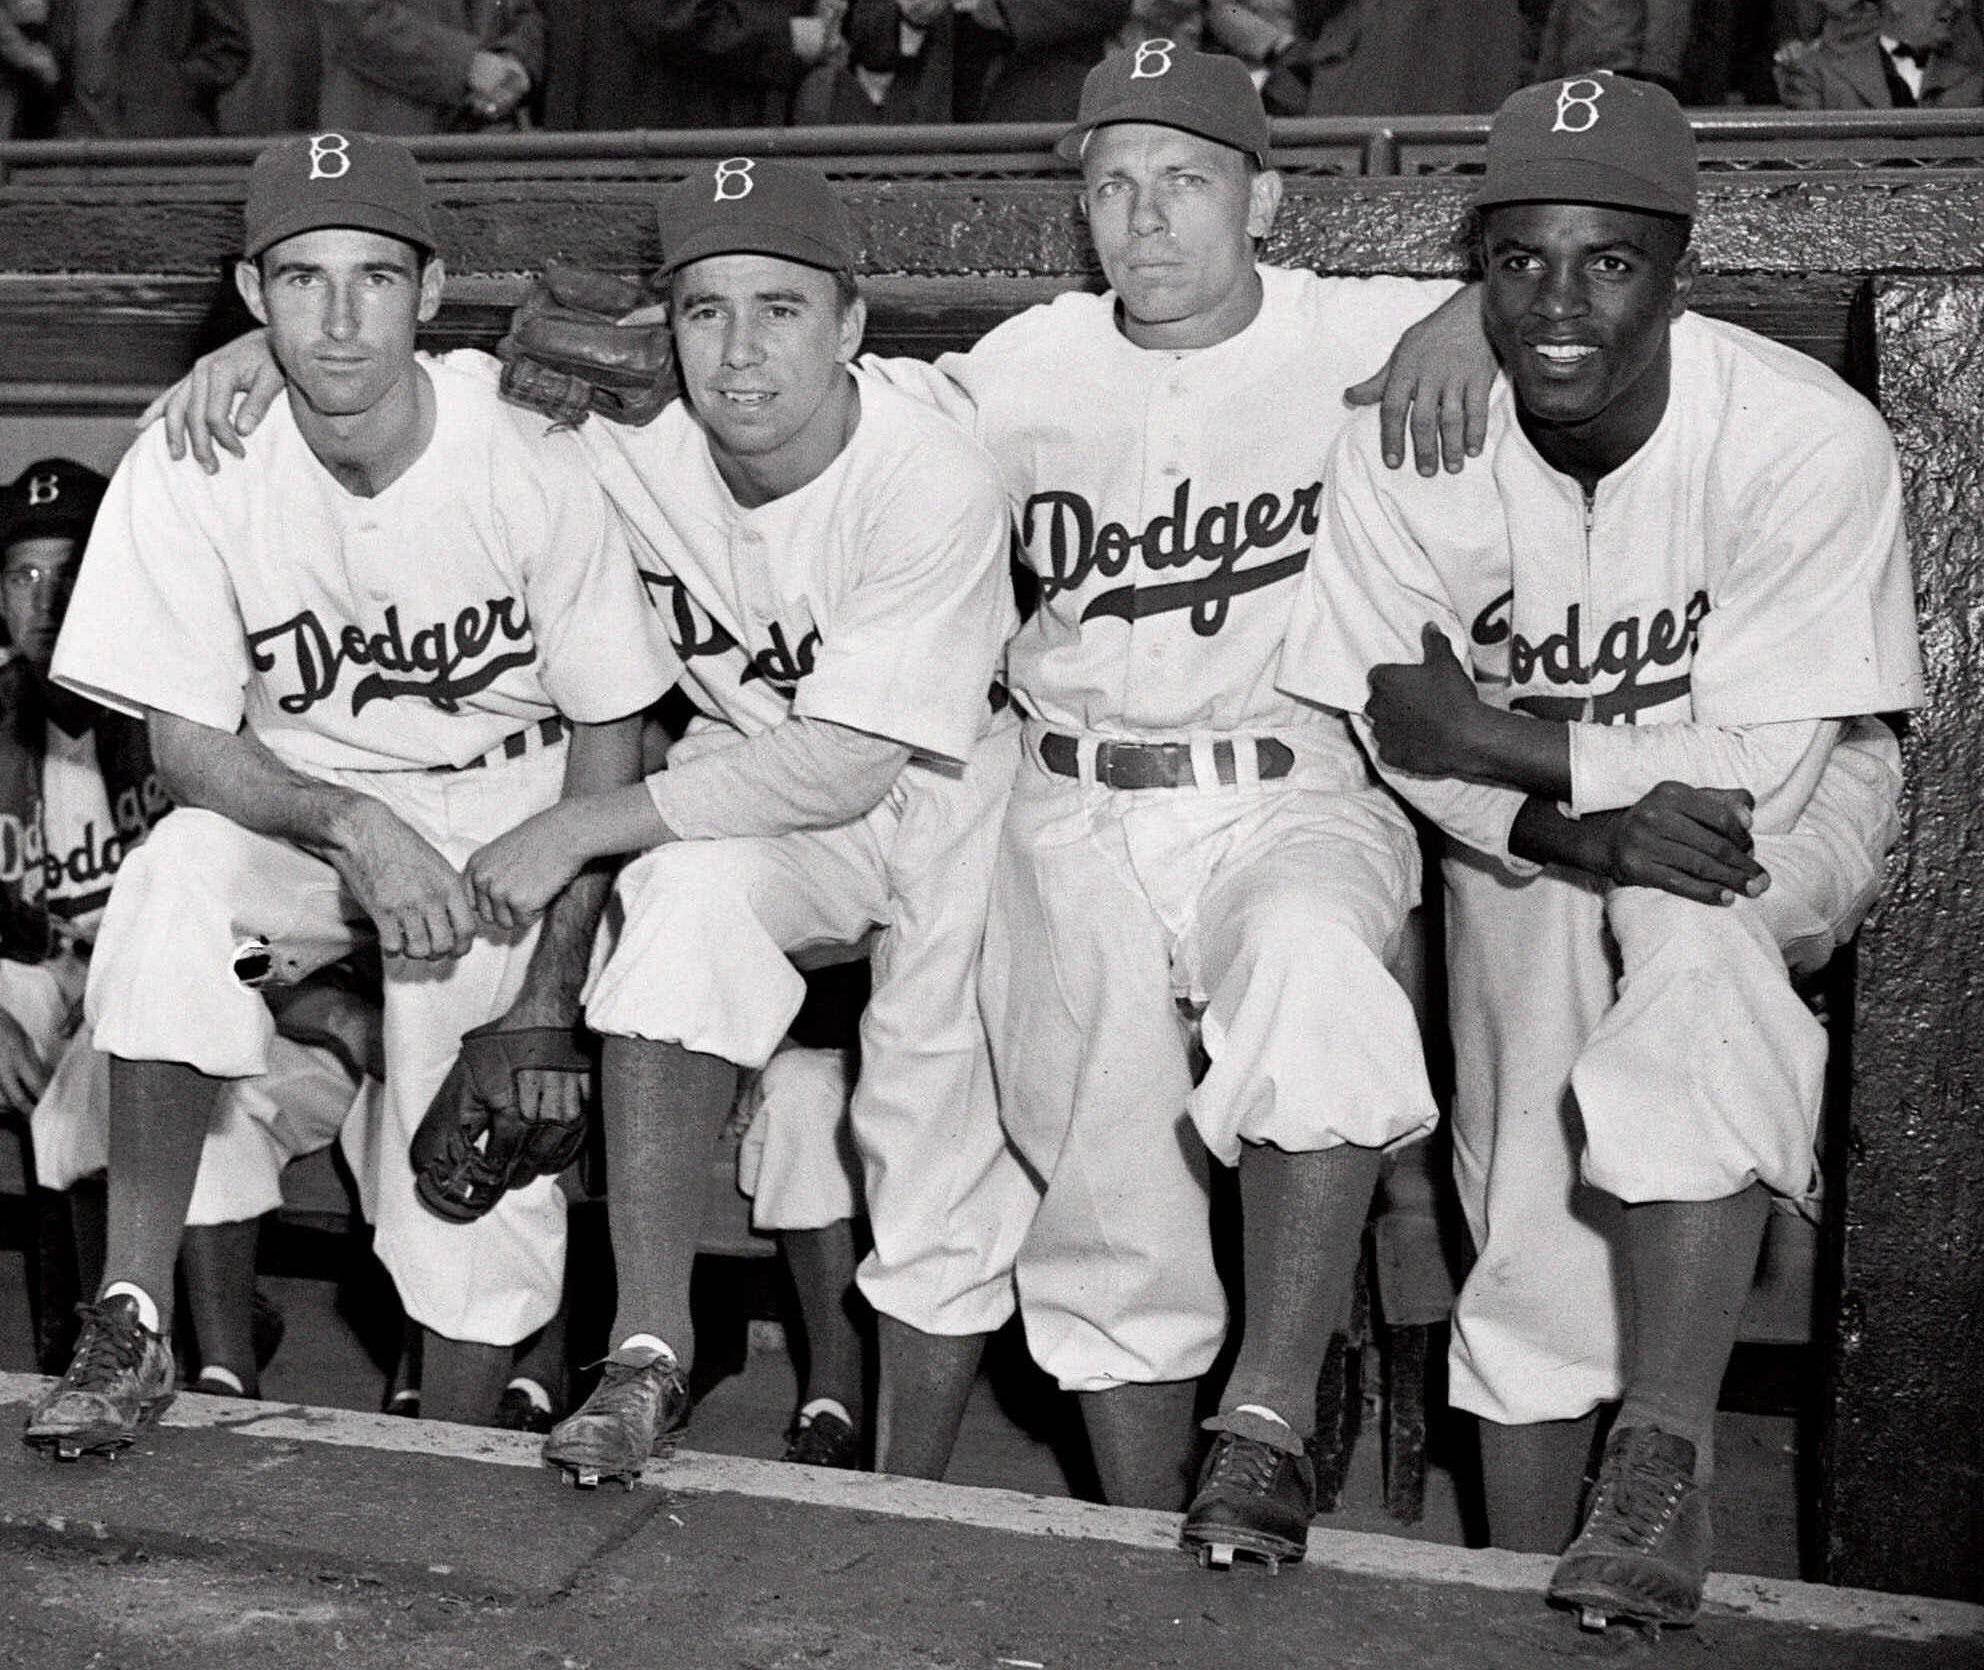 FILE - In this April 15, 1947 file photo, from left, Brooklyn Dodgers baseball players John Jorgensen, Pee Wee Reese, Ed Stanky and Jackie Robinson pose at Ebbets Field in New York. The ghosts of Dodgertown are everywhere. Along the narrow roads winding t